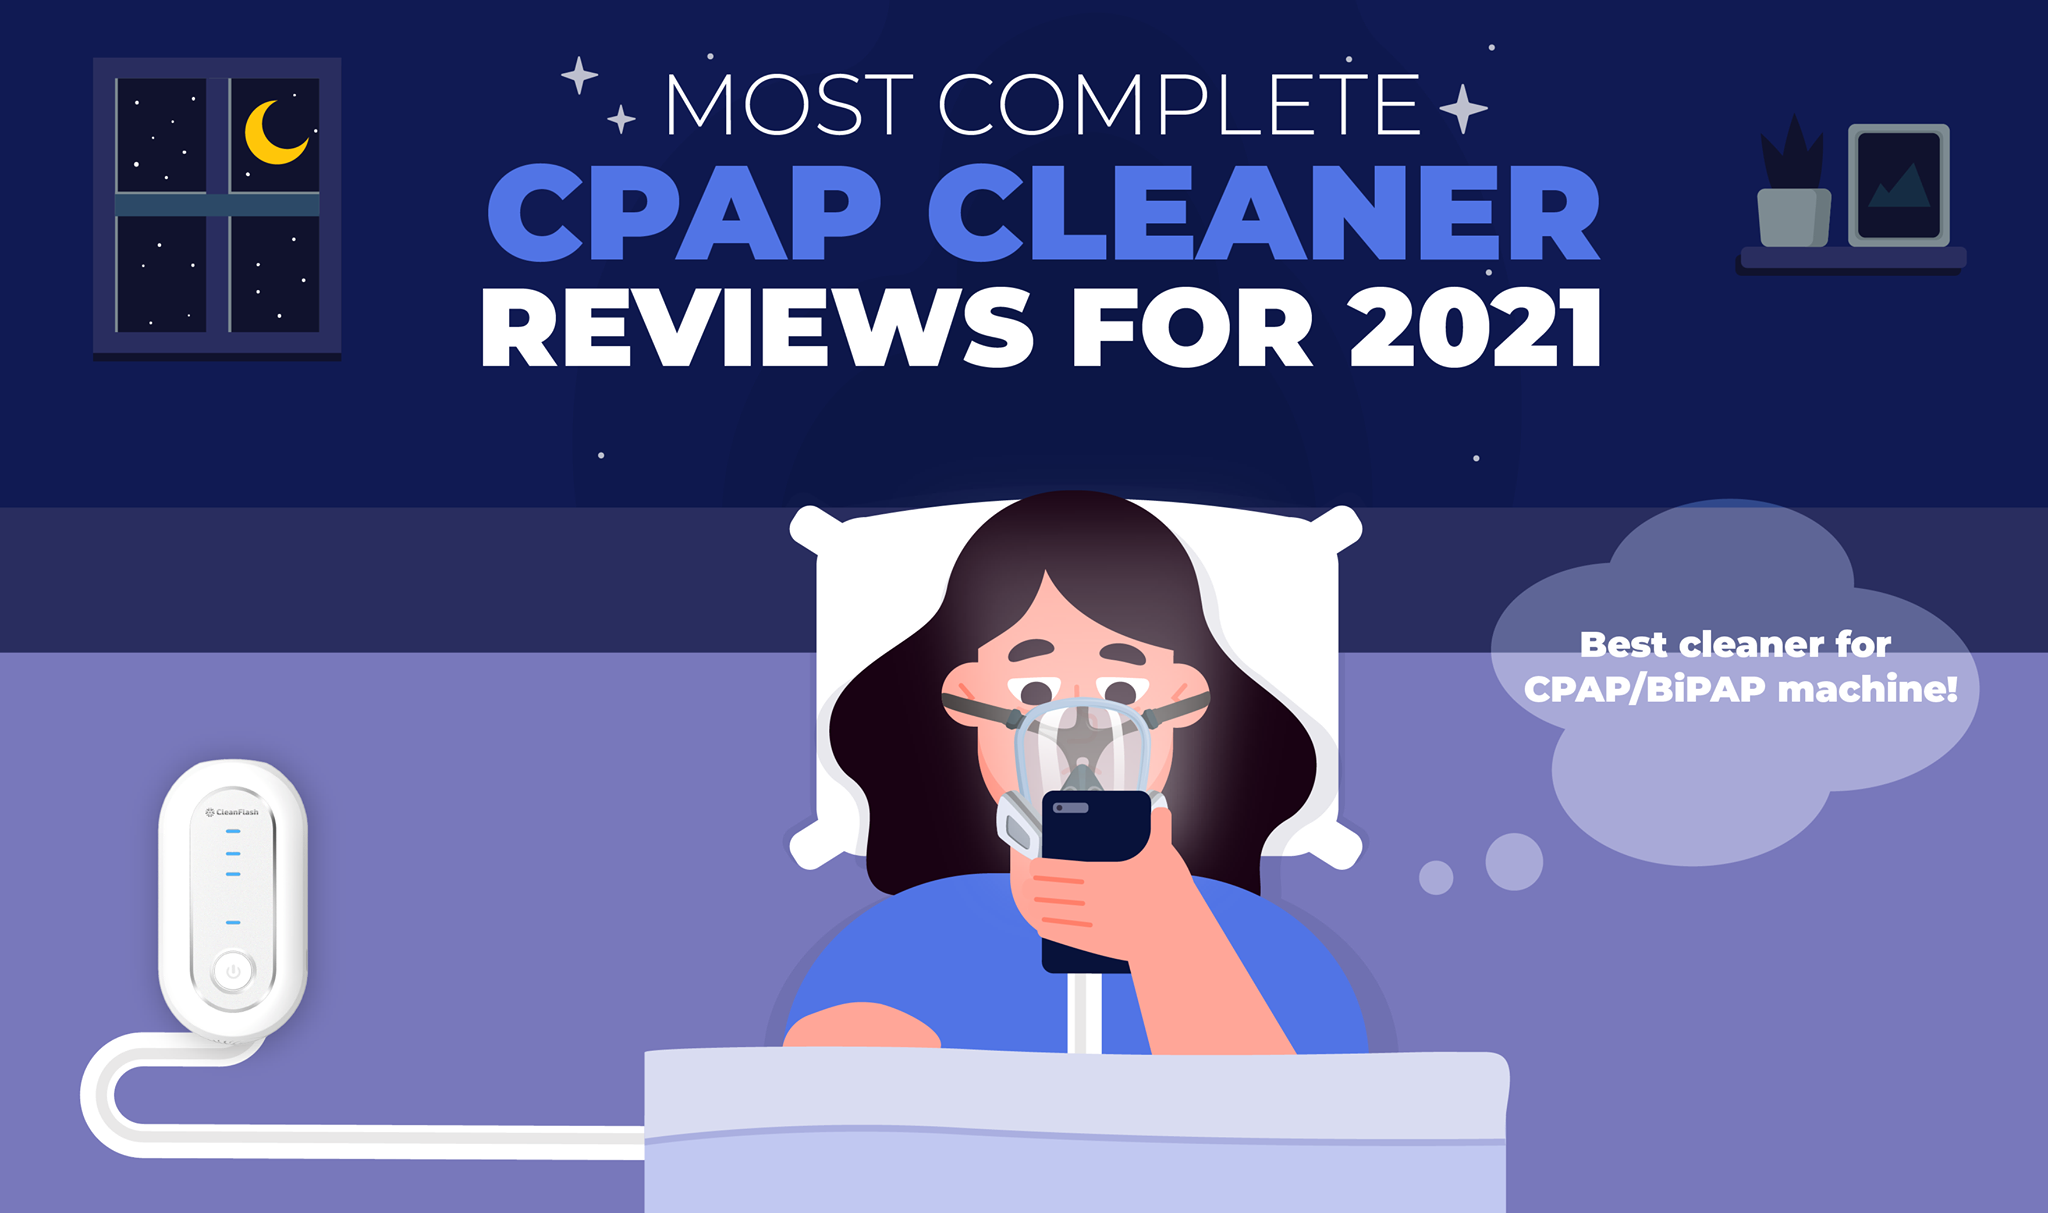 CleanFlash CPAP Machine Cleaners - Most Complete CPAP Cleaner Reviews For 2021